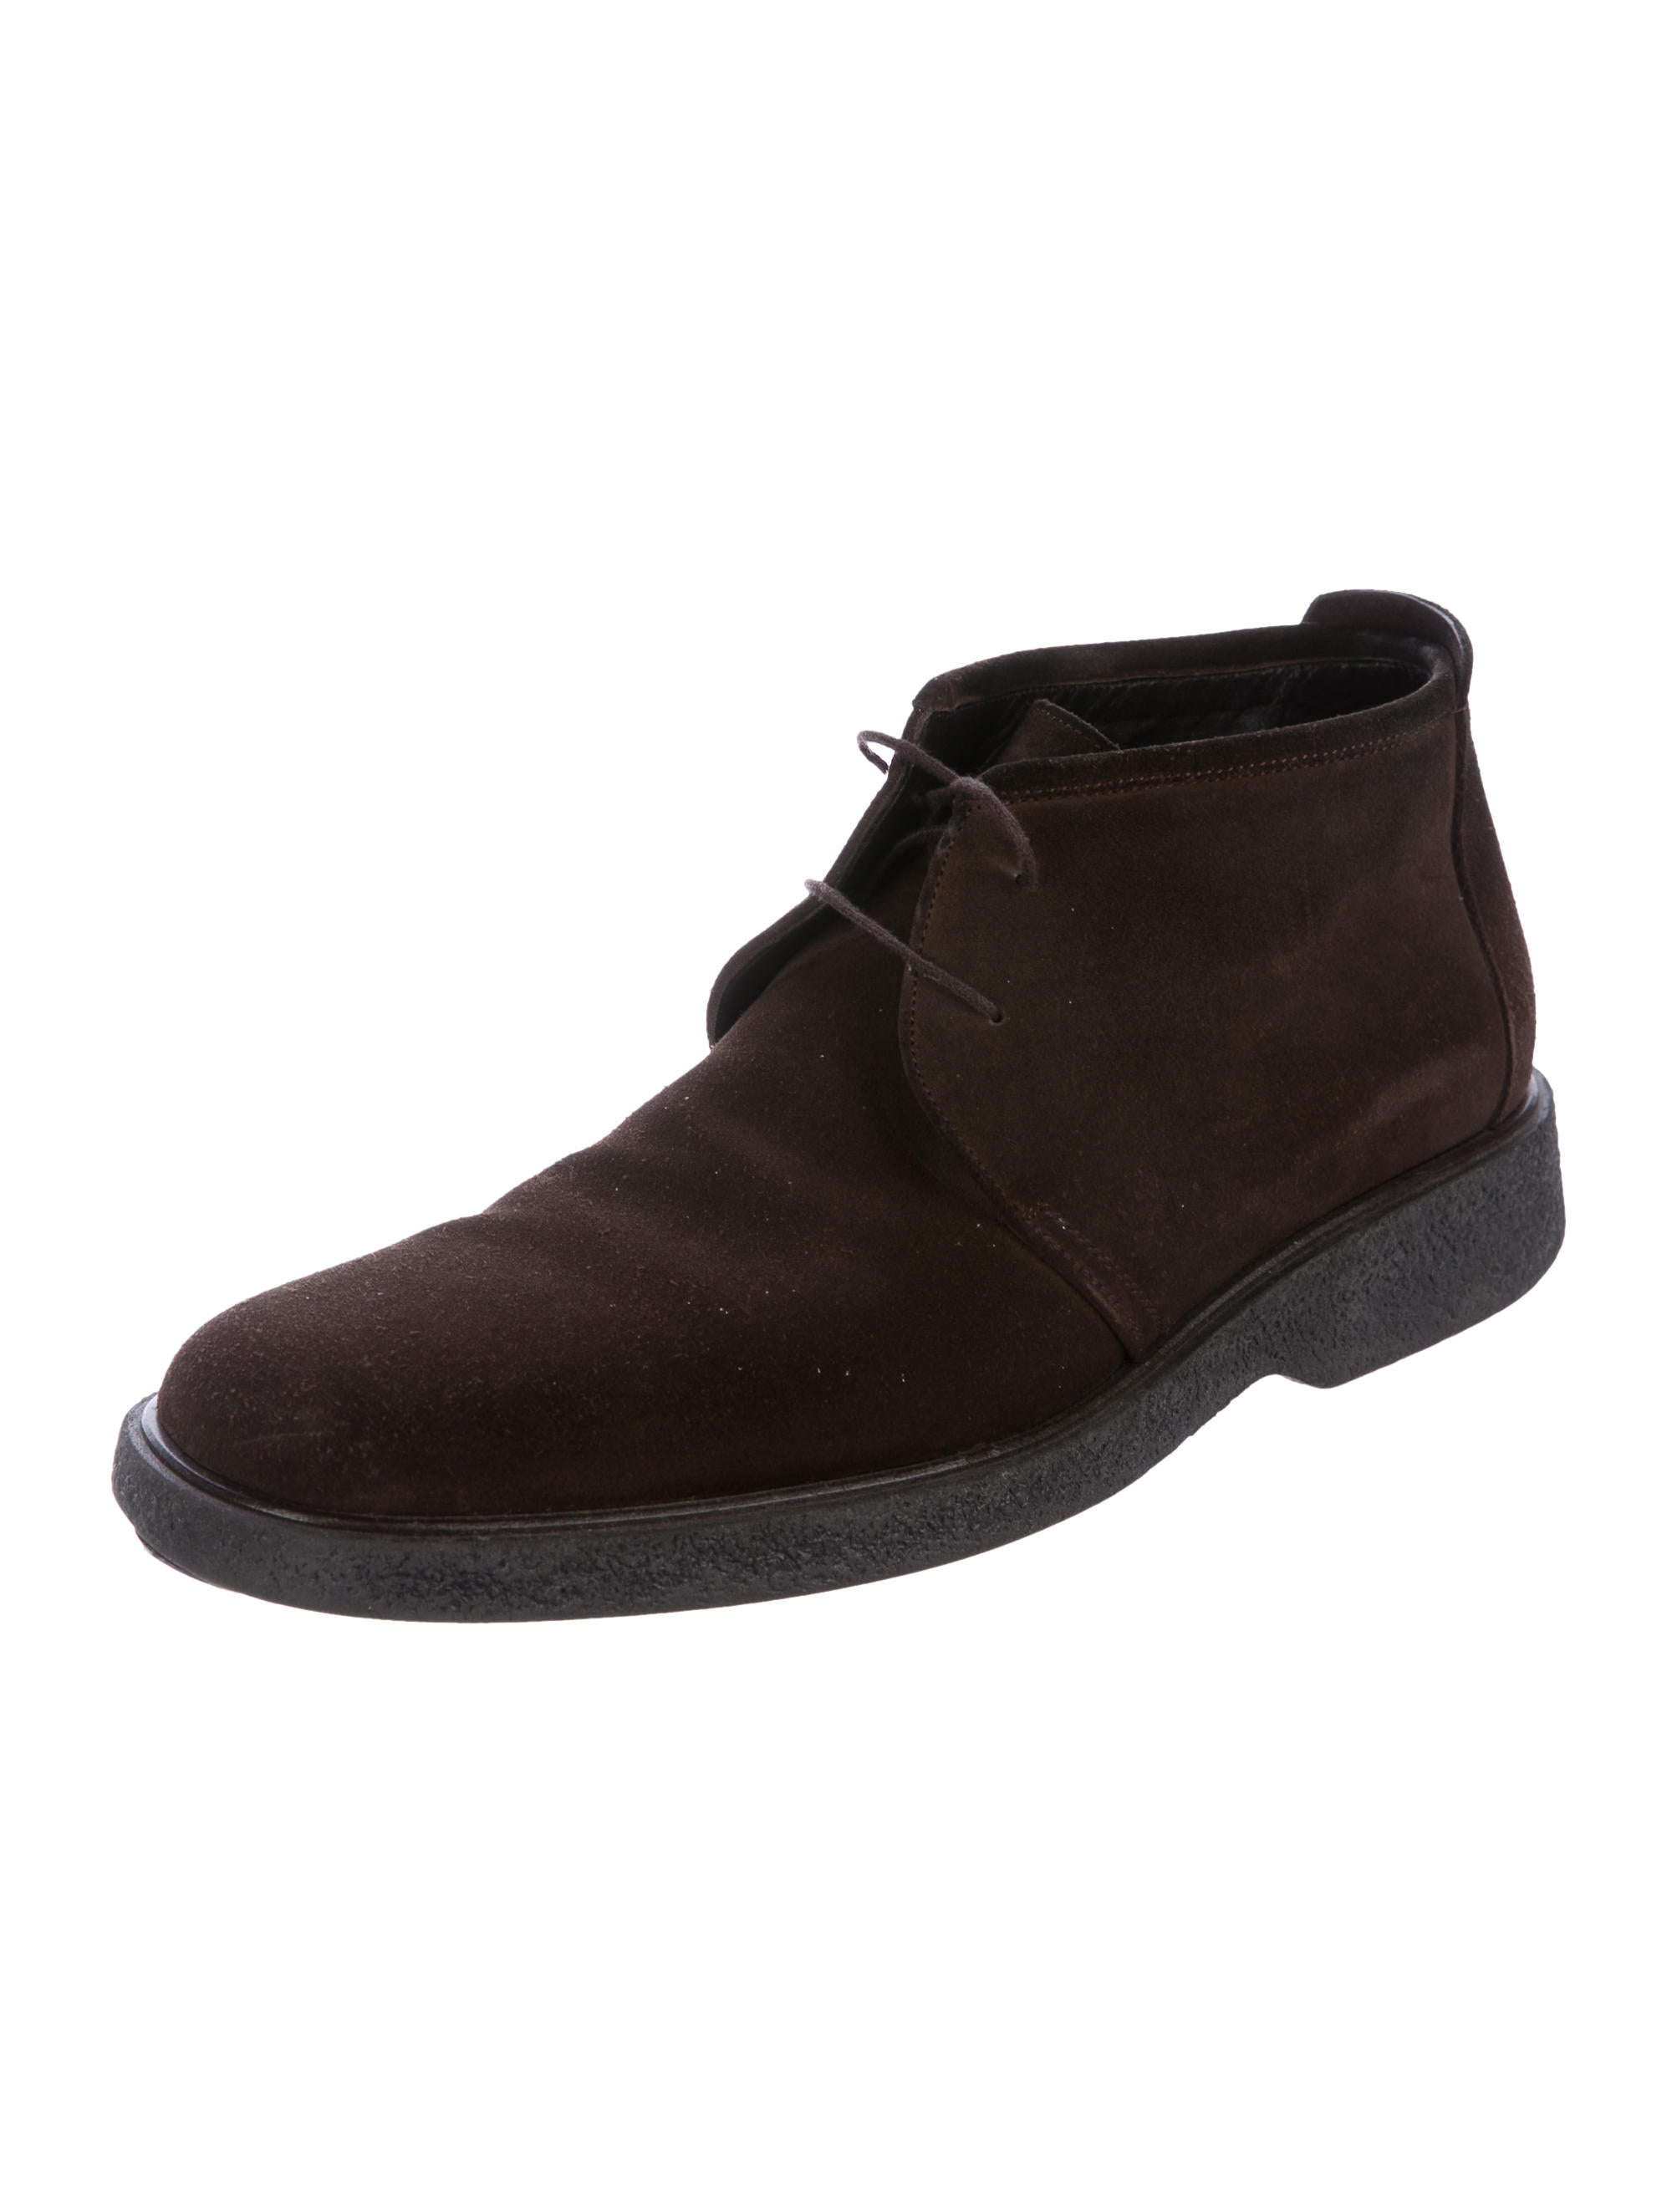 gucci suede desert boots shoes guc175141 the realreal